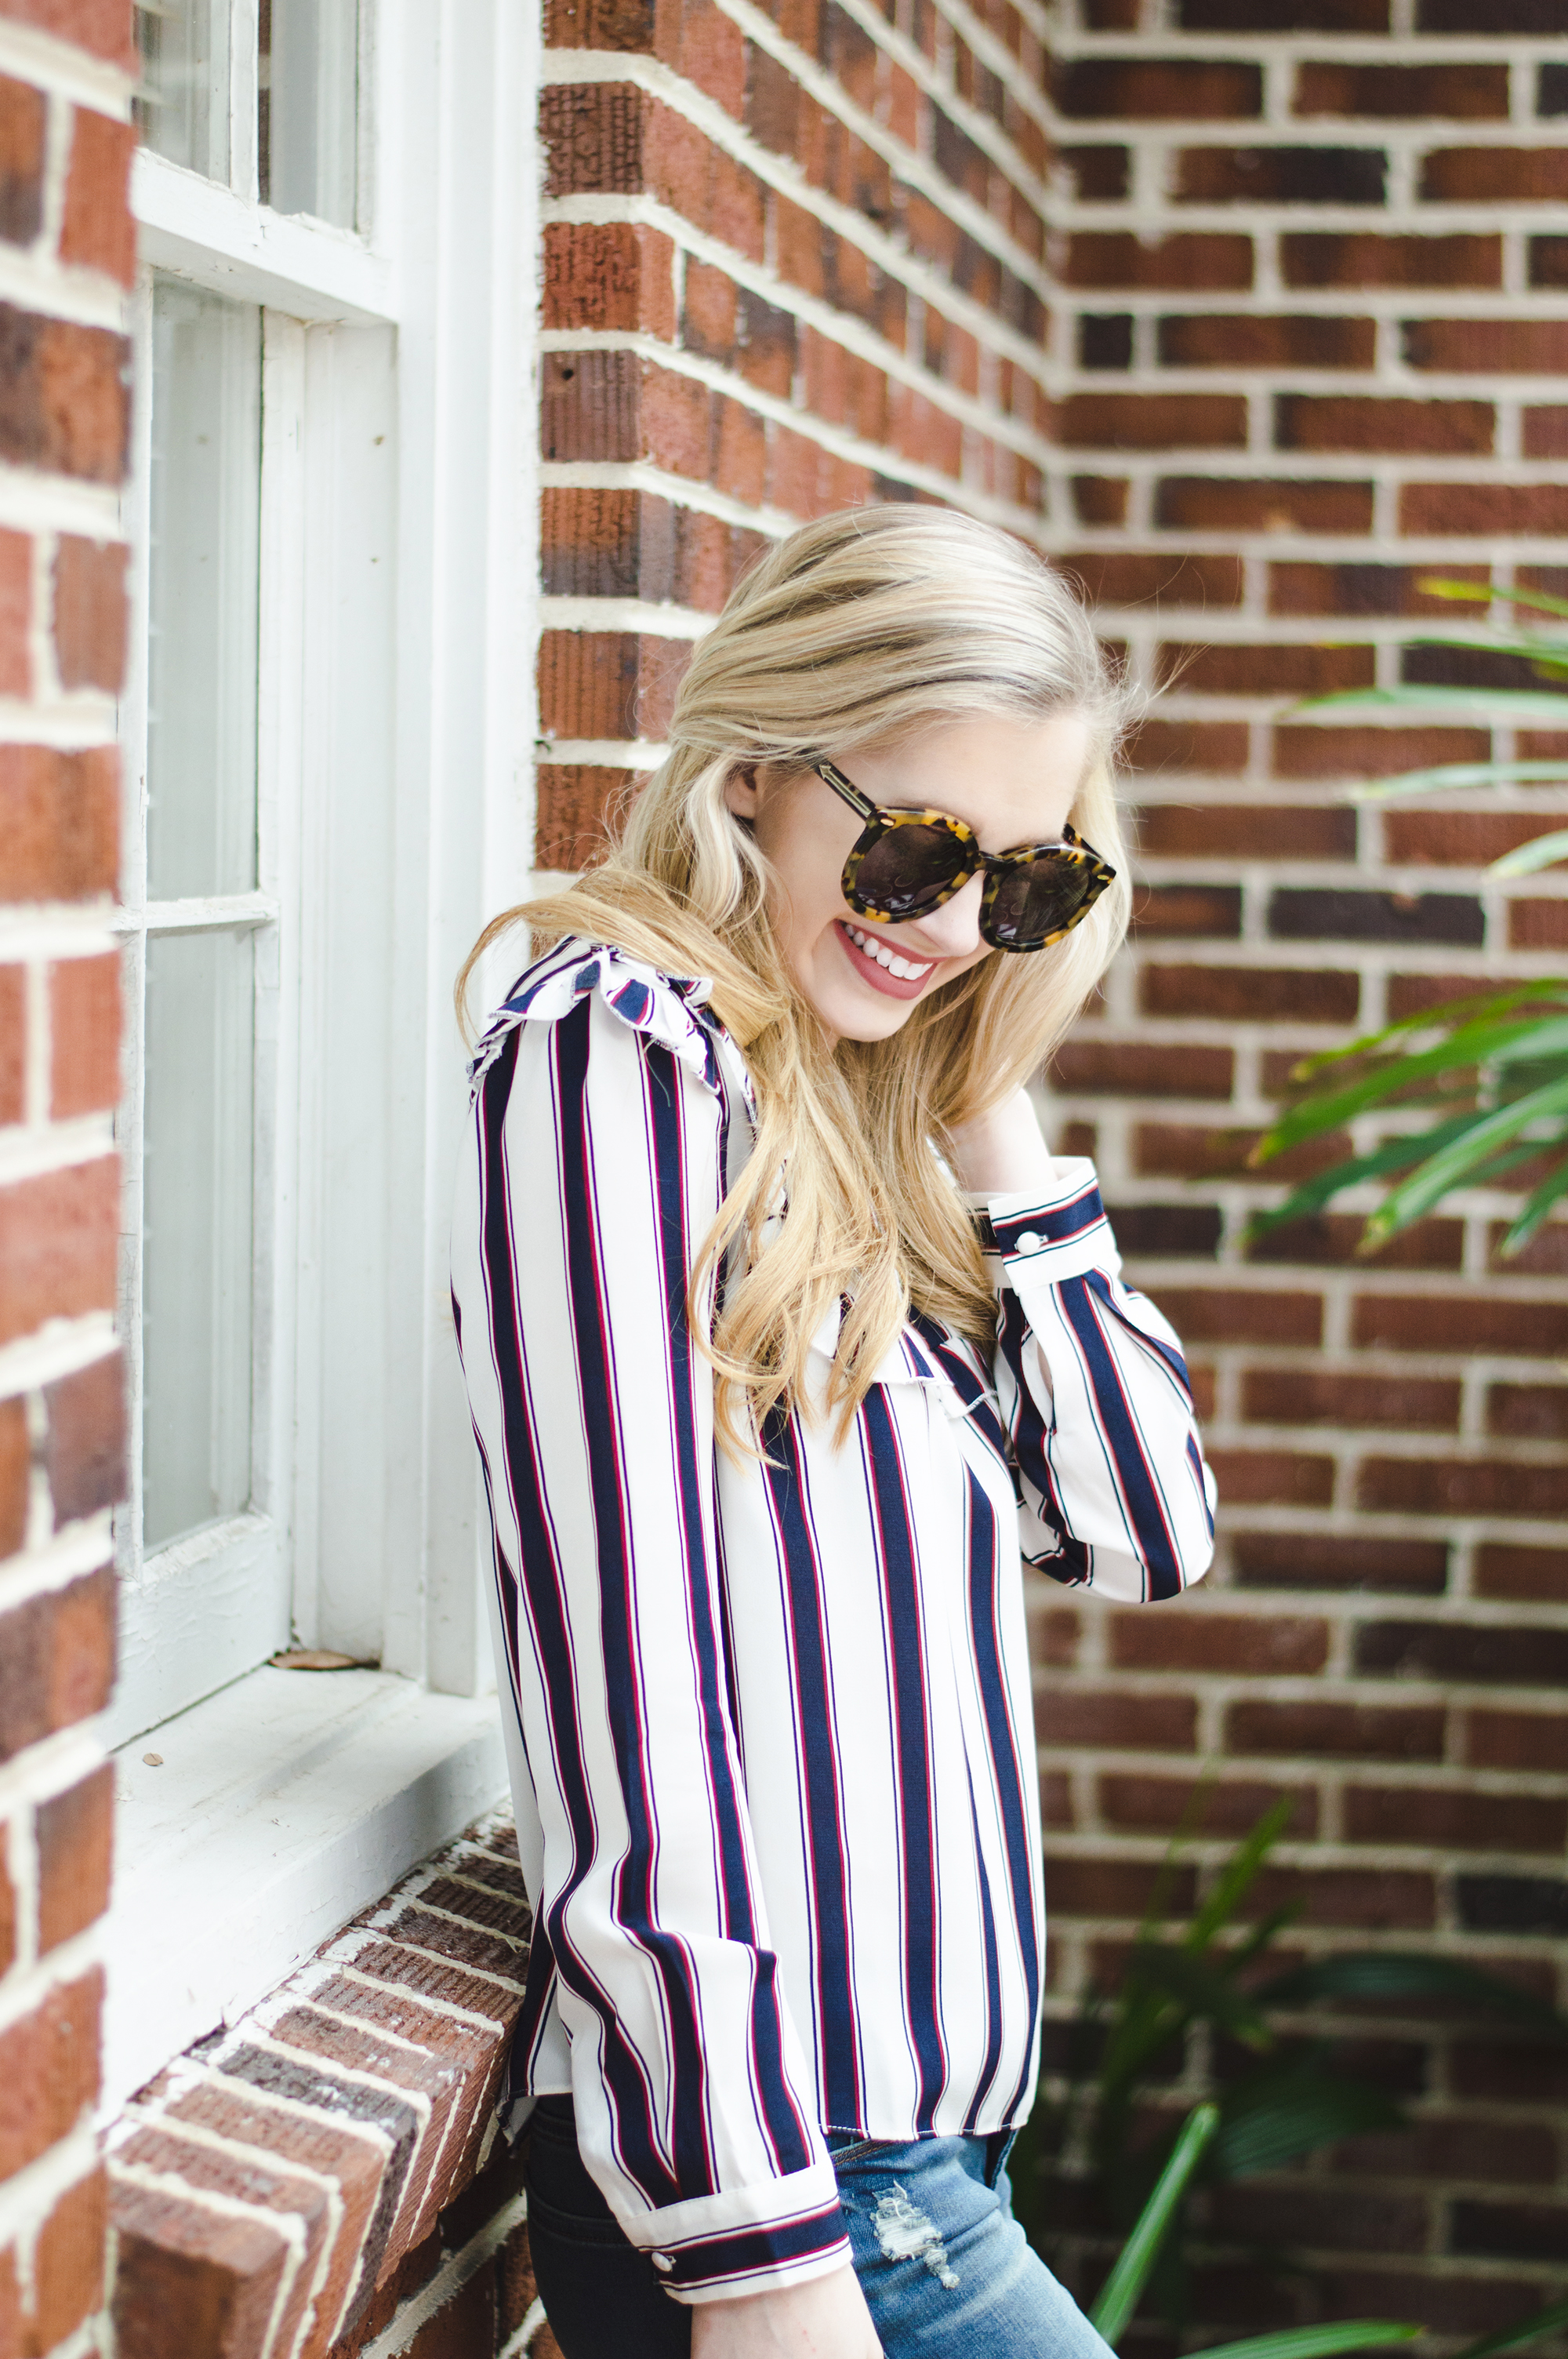 styelled-blog-elle-elisabeth-fashion-style-blogger-fblogger-like-to-know-it-articles-of-society-english-factory-karen-walker-dolce-vita-shop-smac-stripes-18